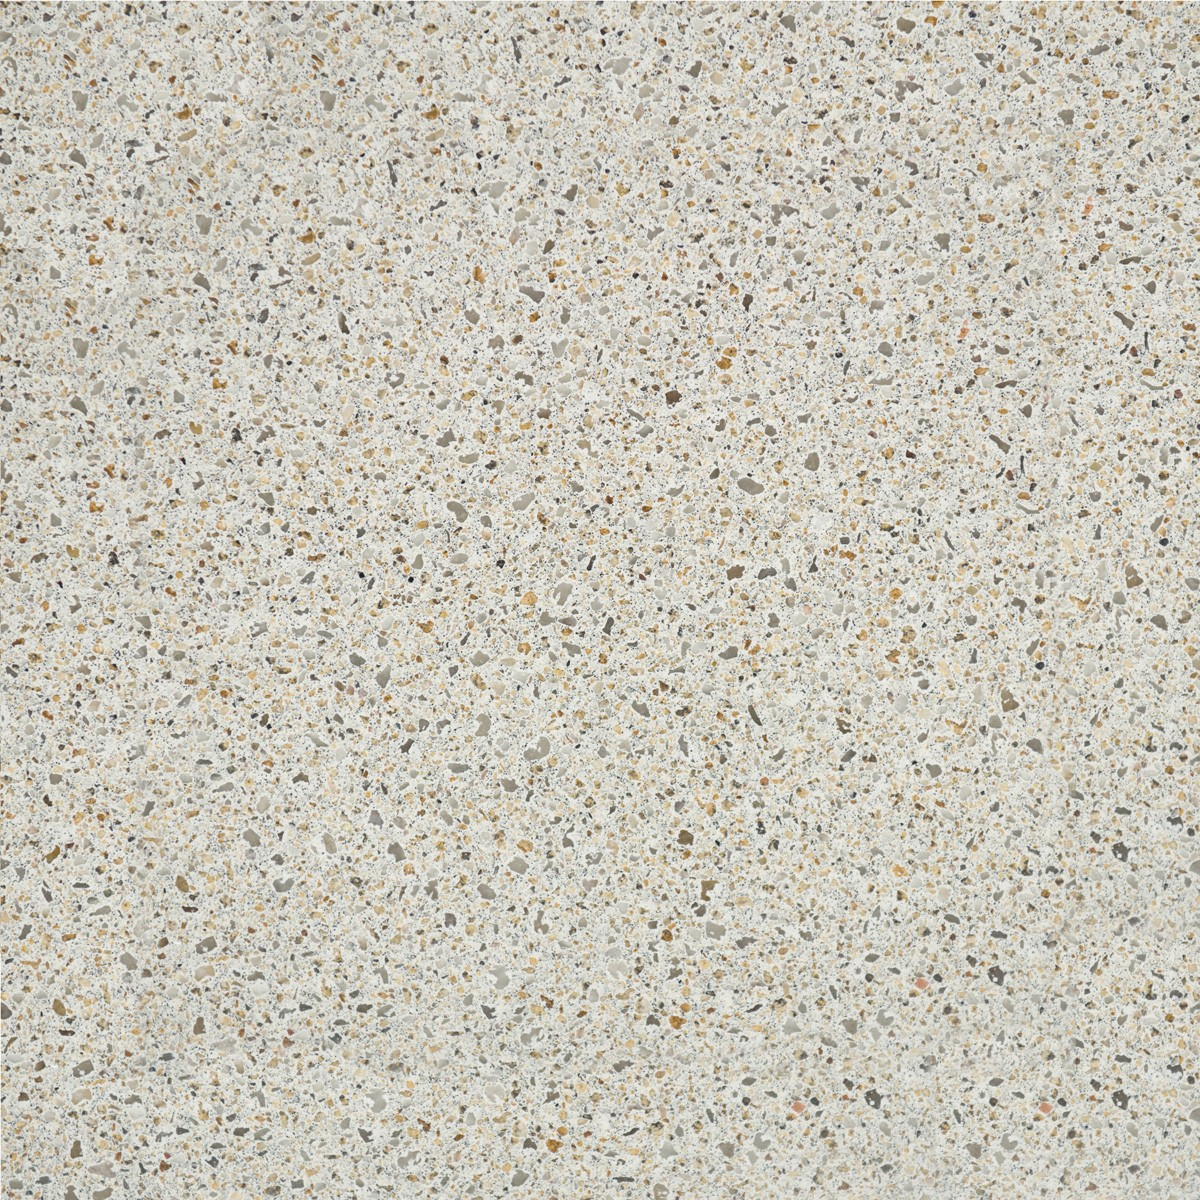 King Ivory White And Brown Quartz Countertop Granite